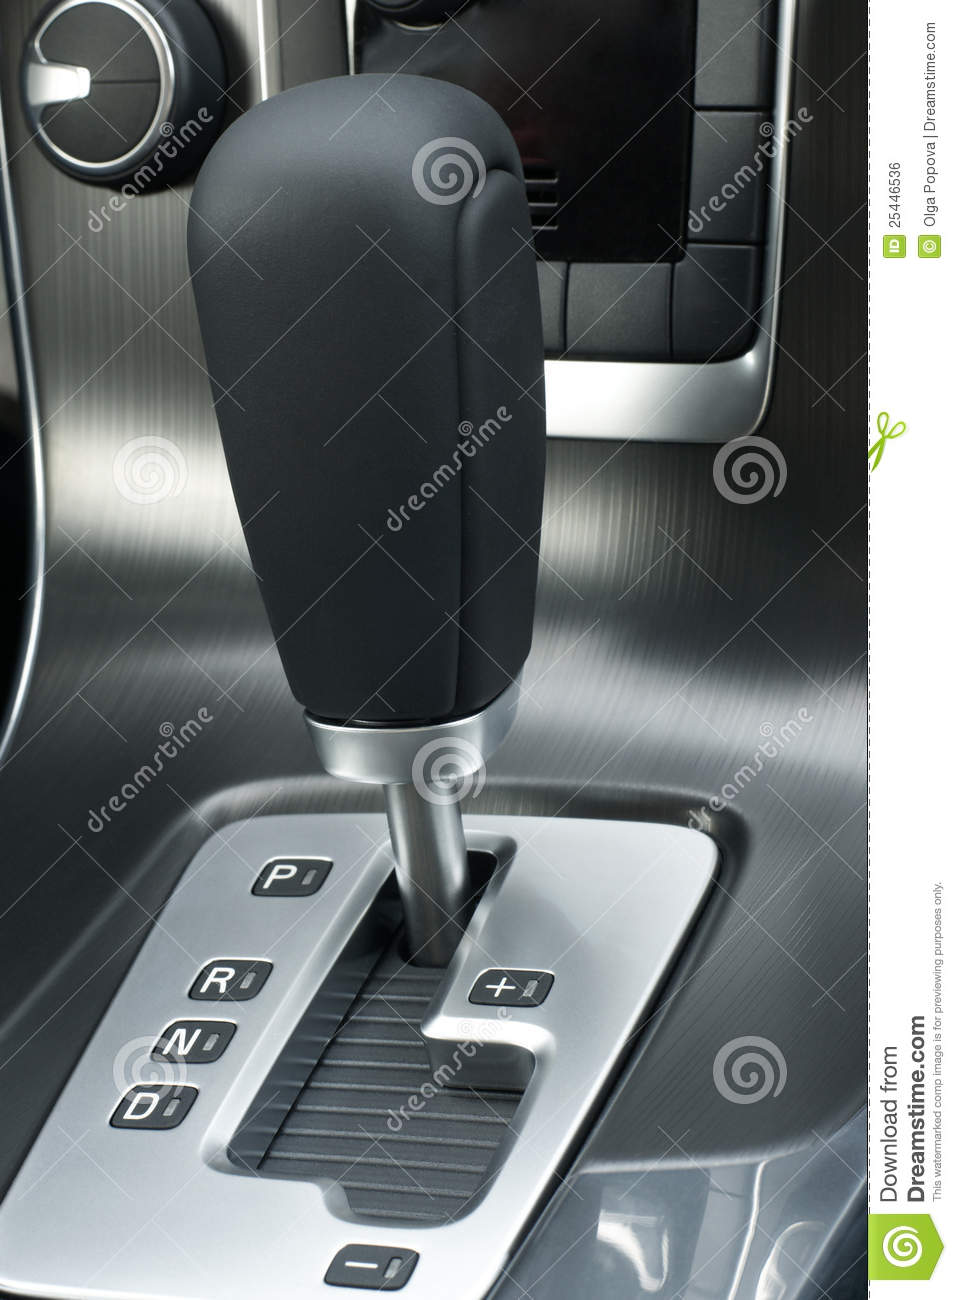 How To Start A Stick Shift >> Automatic Gear Shift Of A Car Royalty Free Stock Image - Image: 25446536